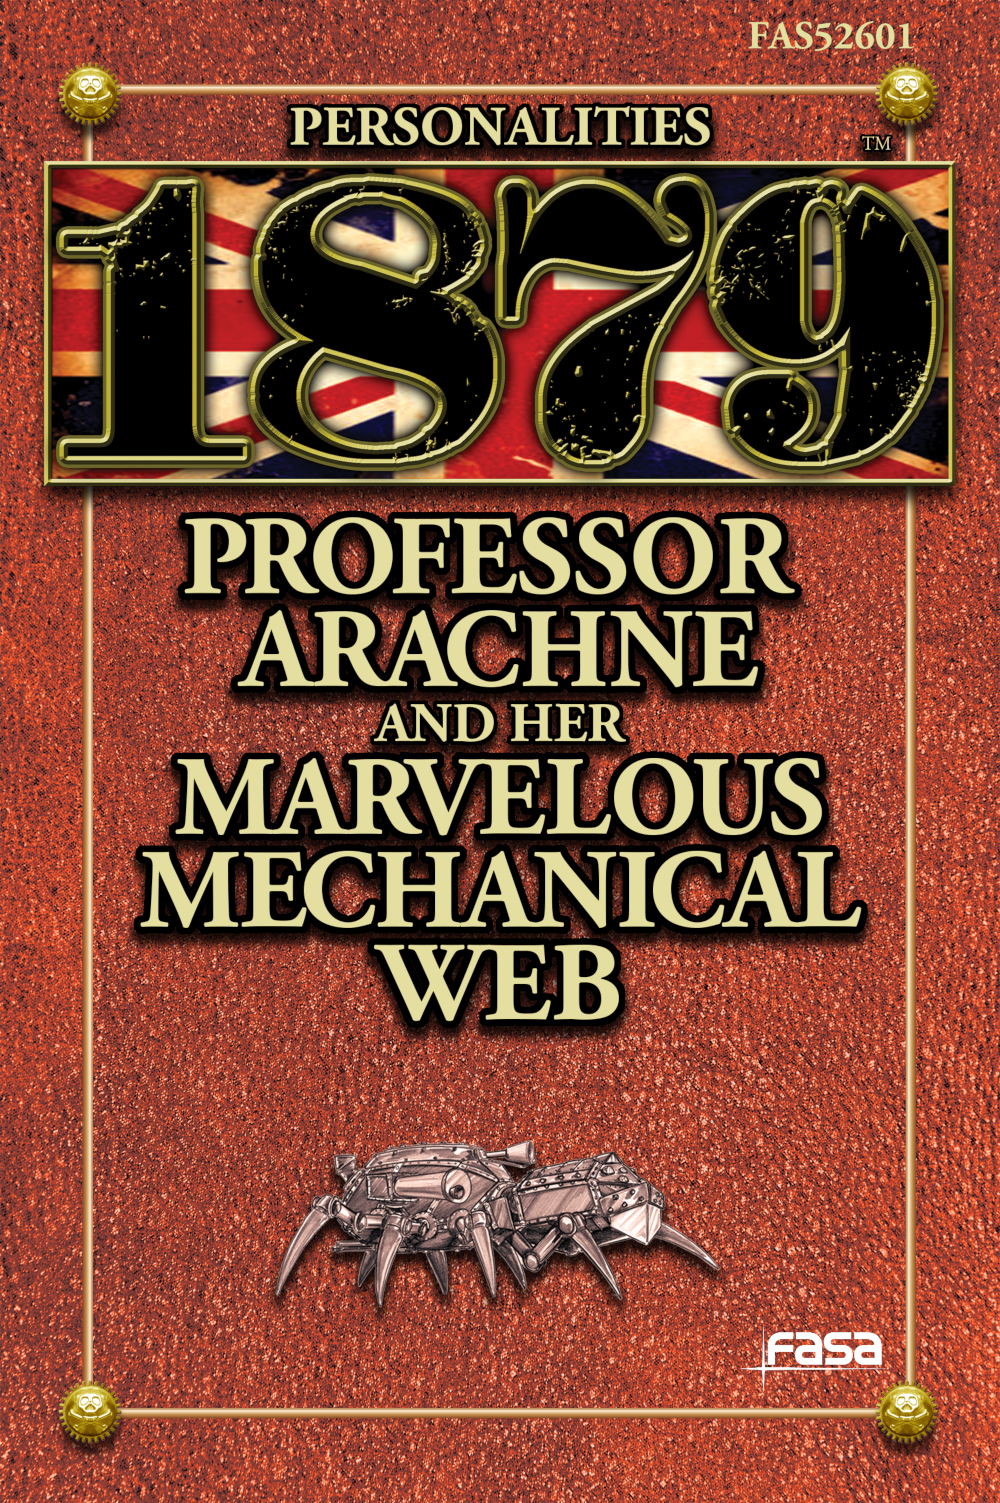 1879 RPG Personalities 01 Professor Arachne